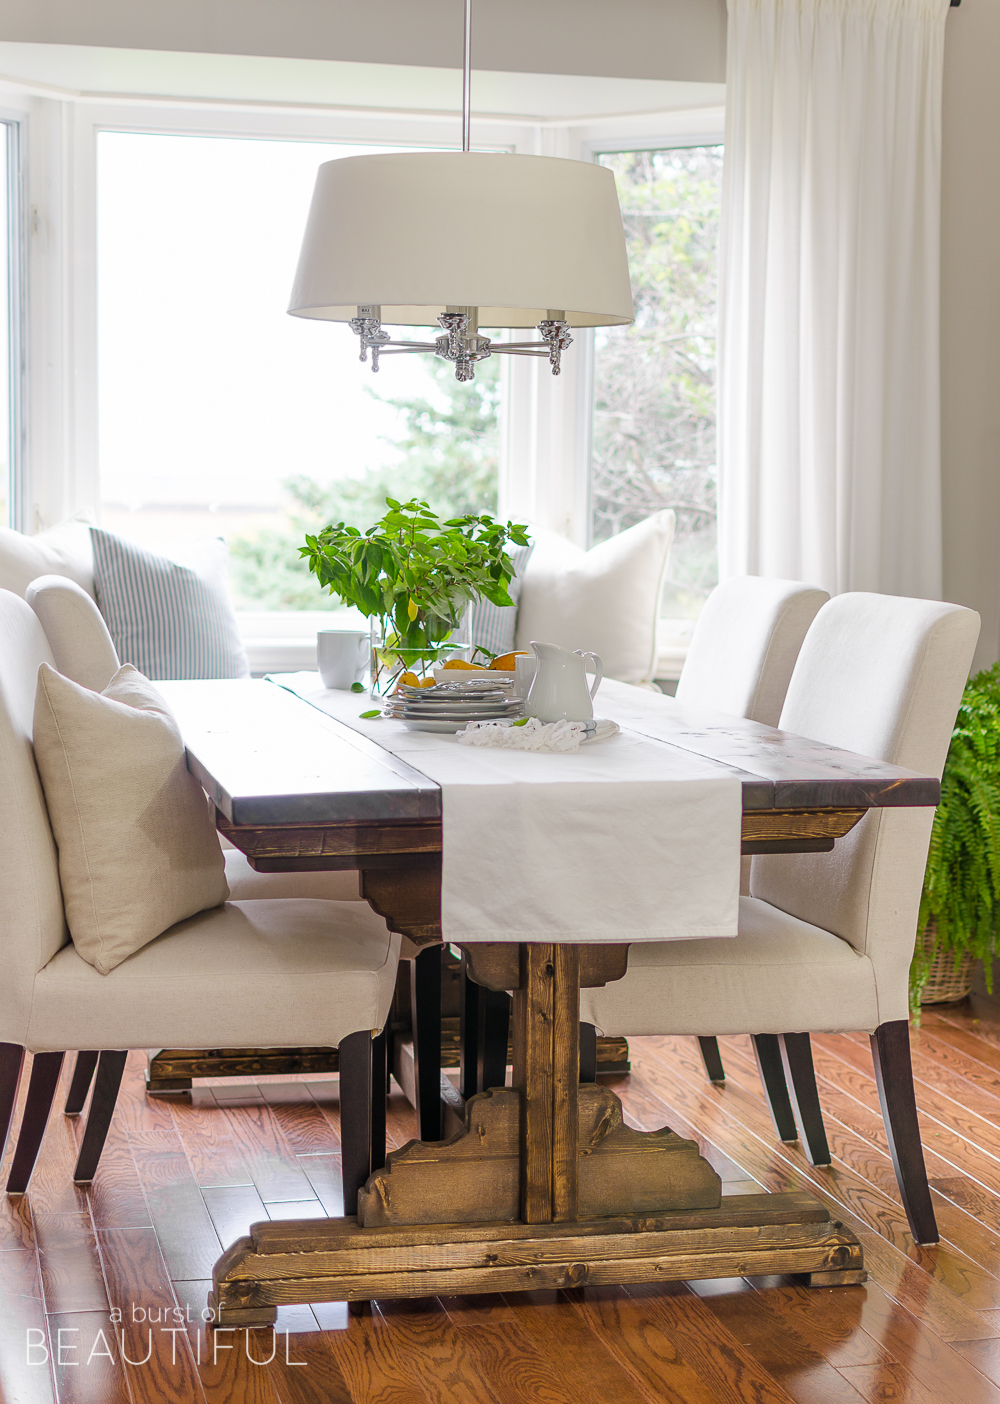 Build A Beautiful DIY Farmhouse Dining Room Table With These Simple Plans  From Www.aburstofbeautiful